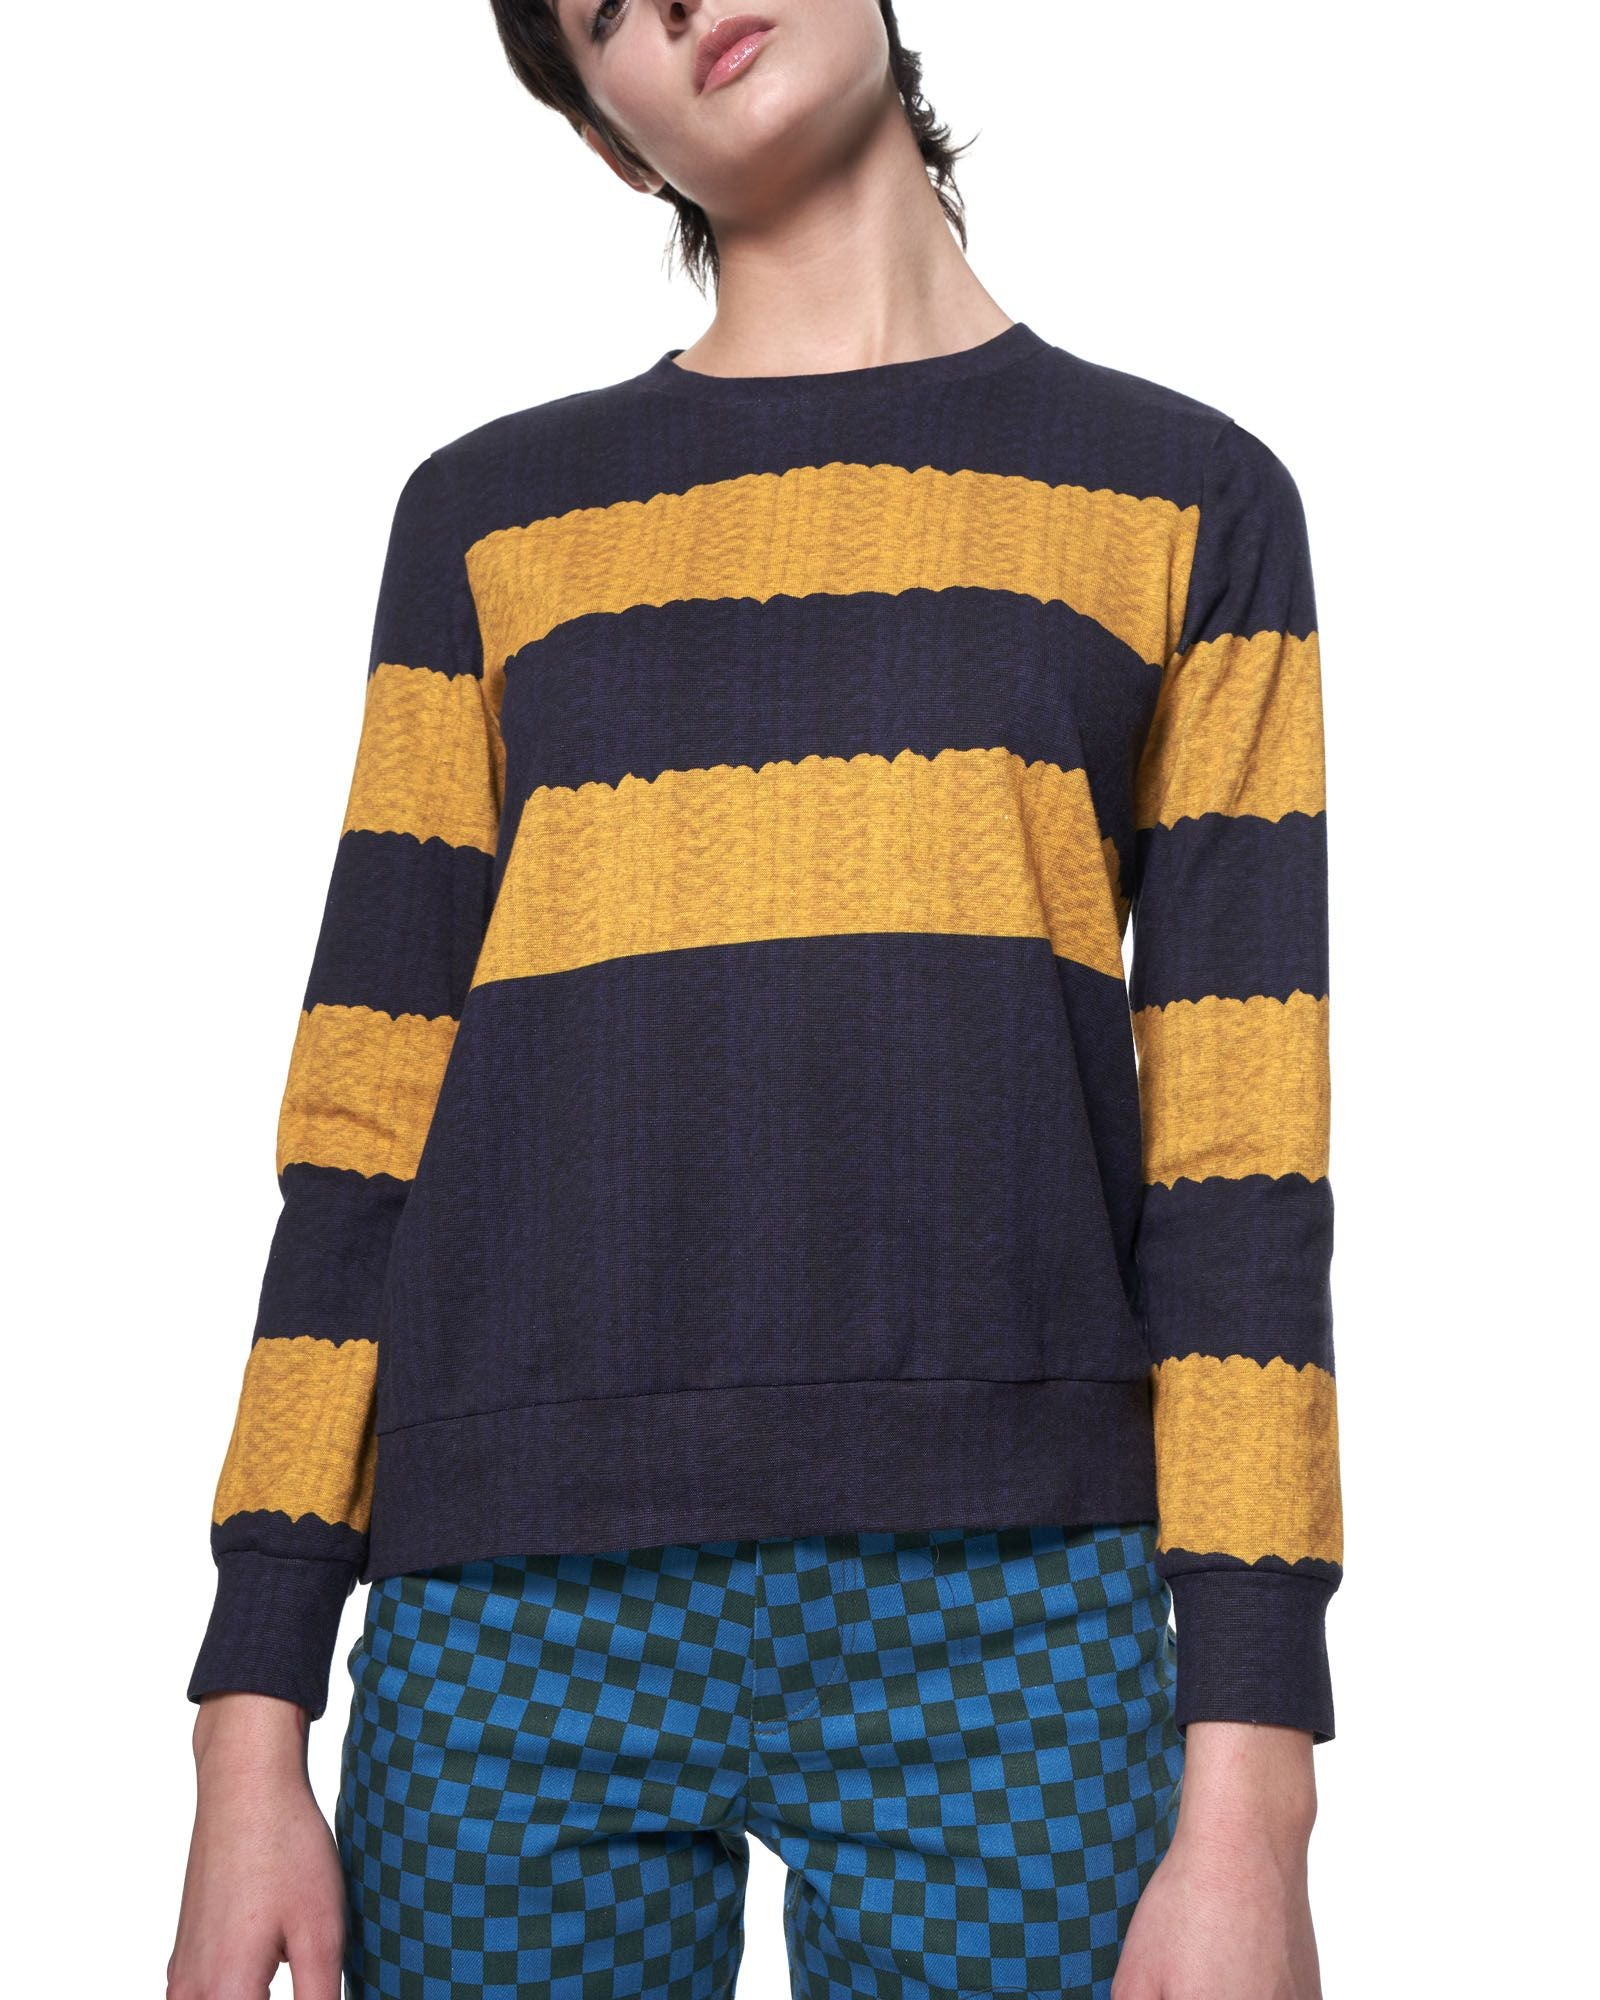 Rumi Sweatshirt | Navy Yellow Stripe